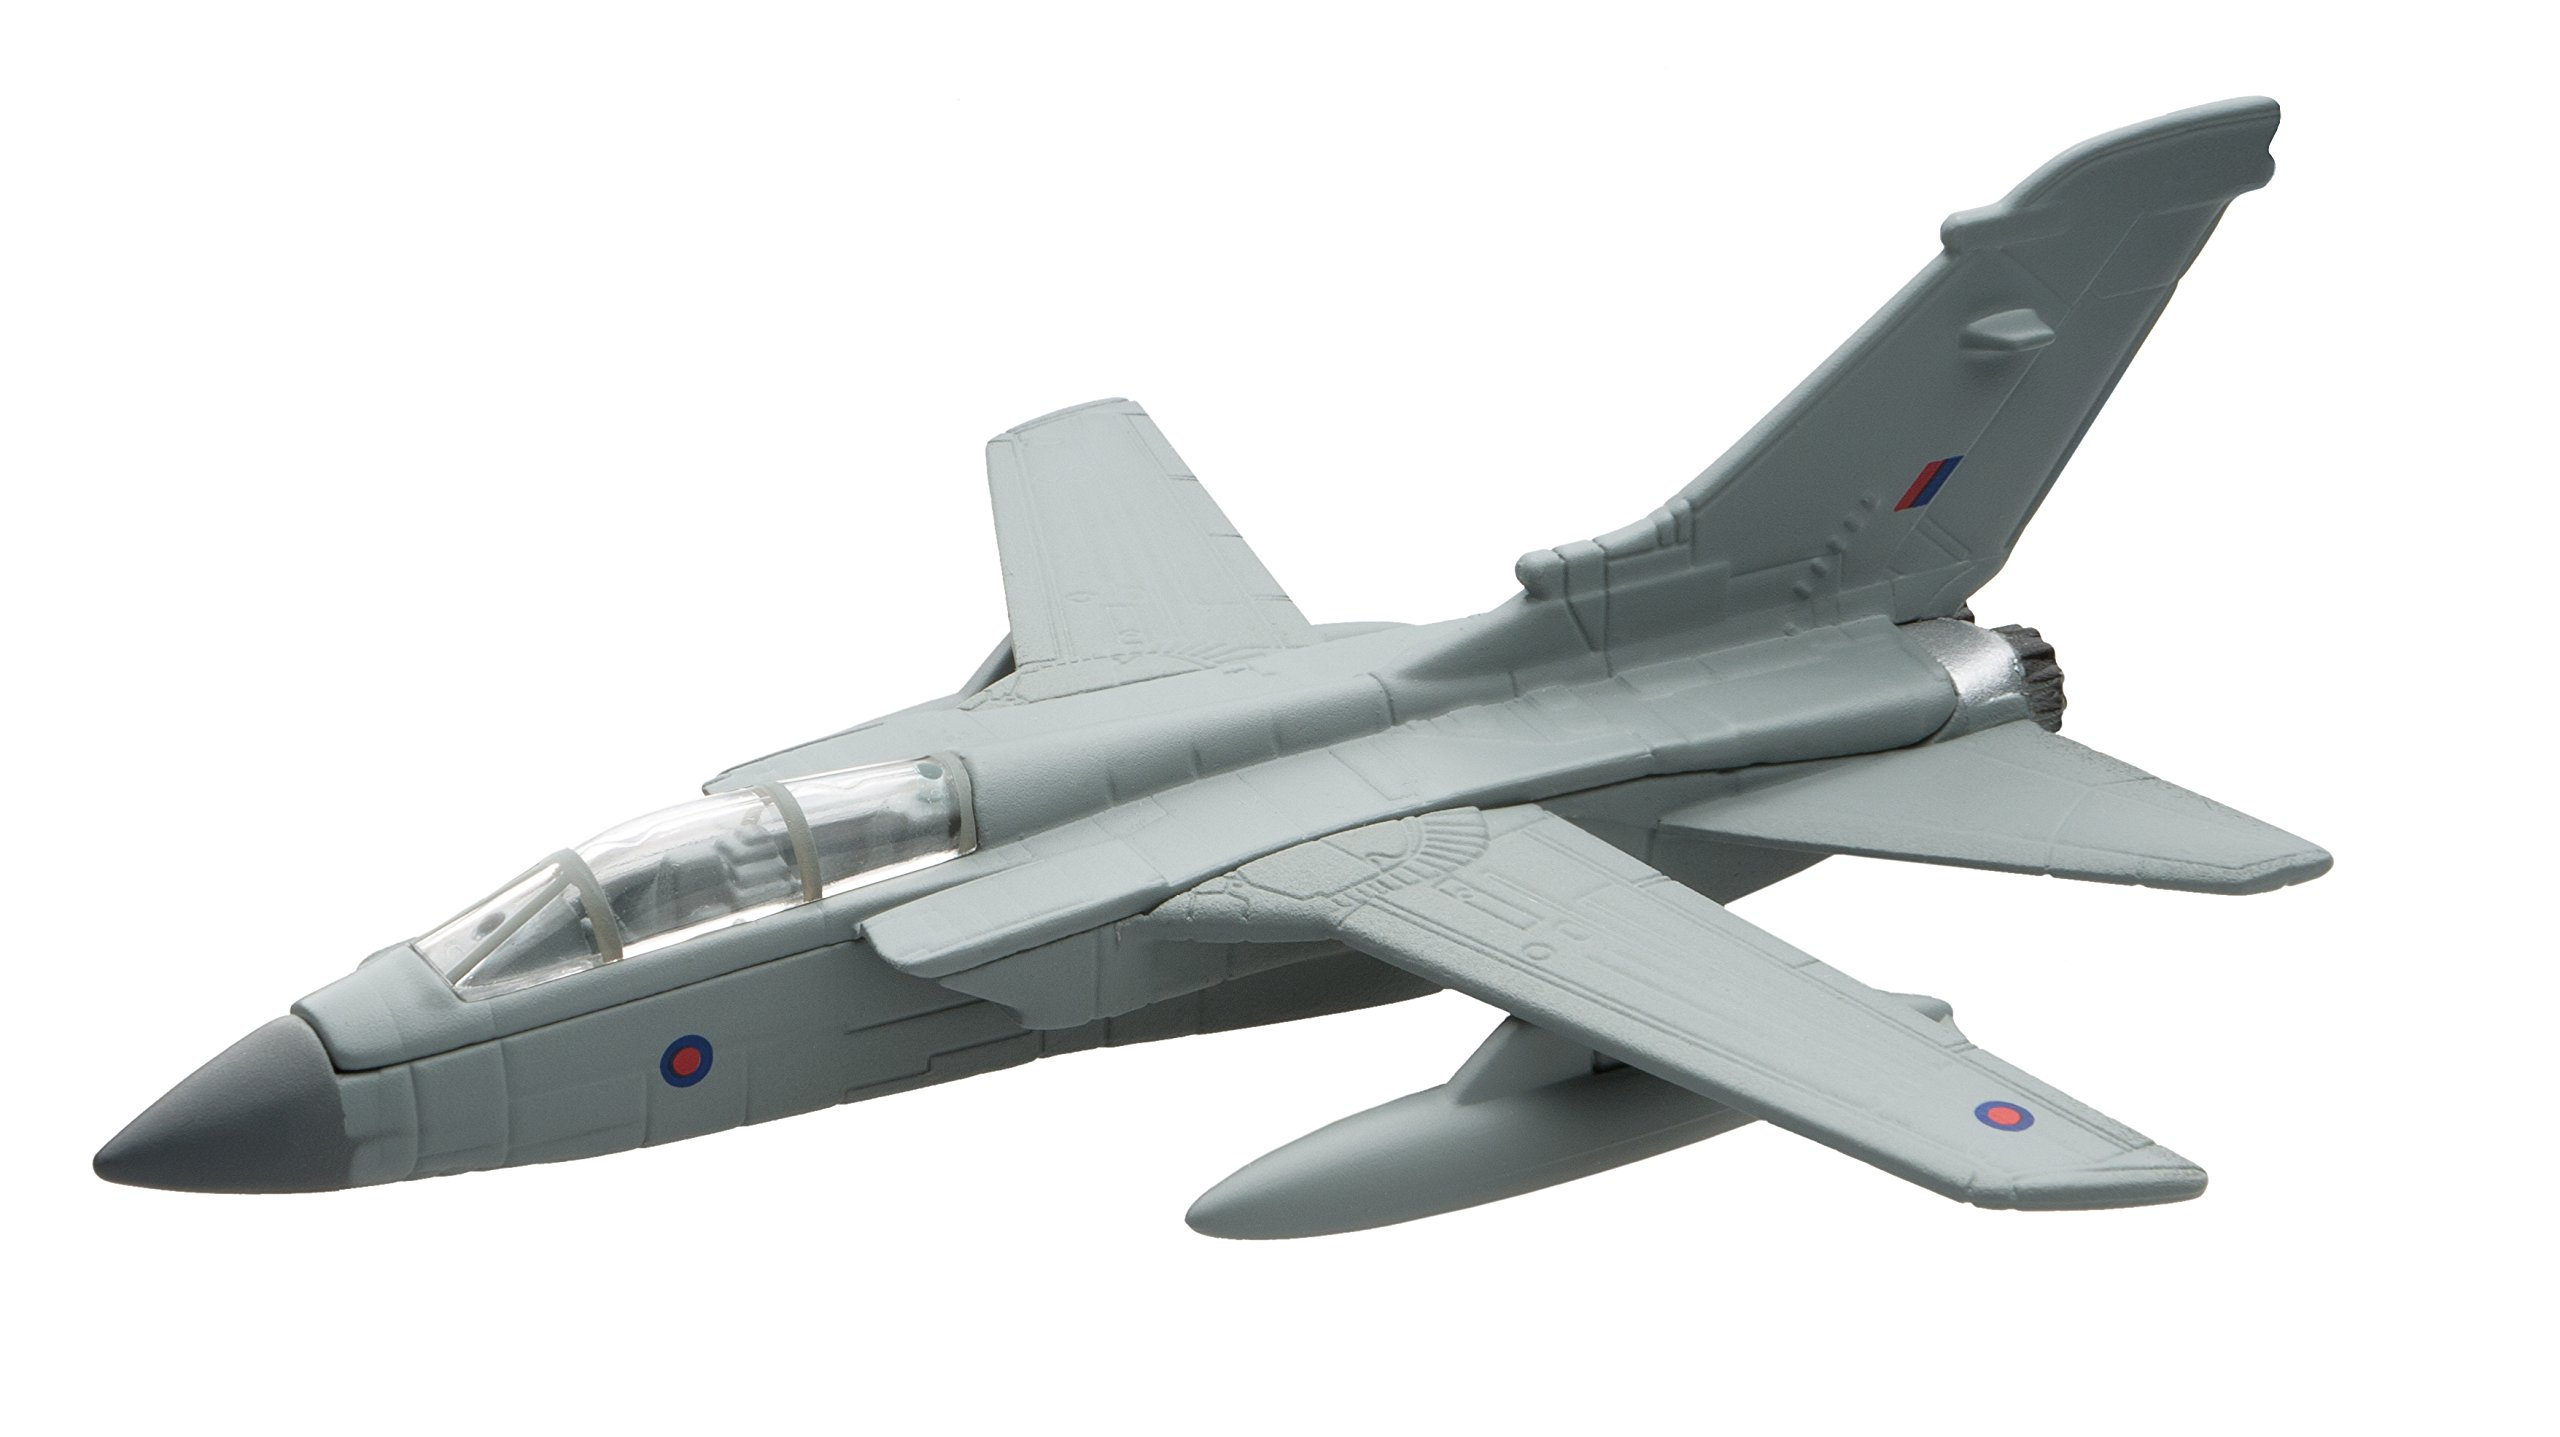 Motormax Richmond Toys Sky Wings Classic Hurricane Aircraft Die-Cast Model Approx 1:100 Scale with Authentic Details